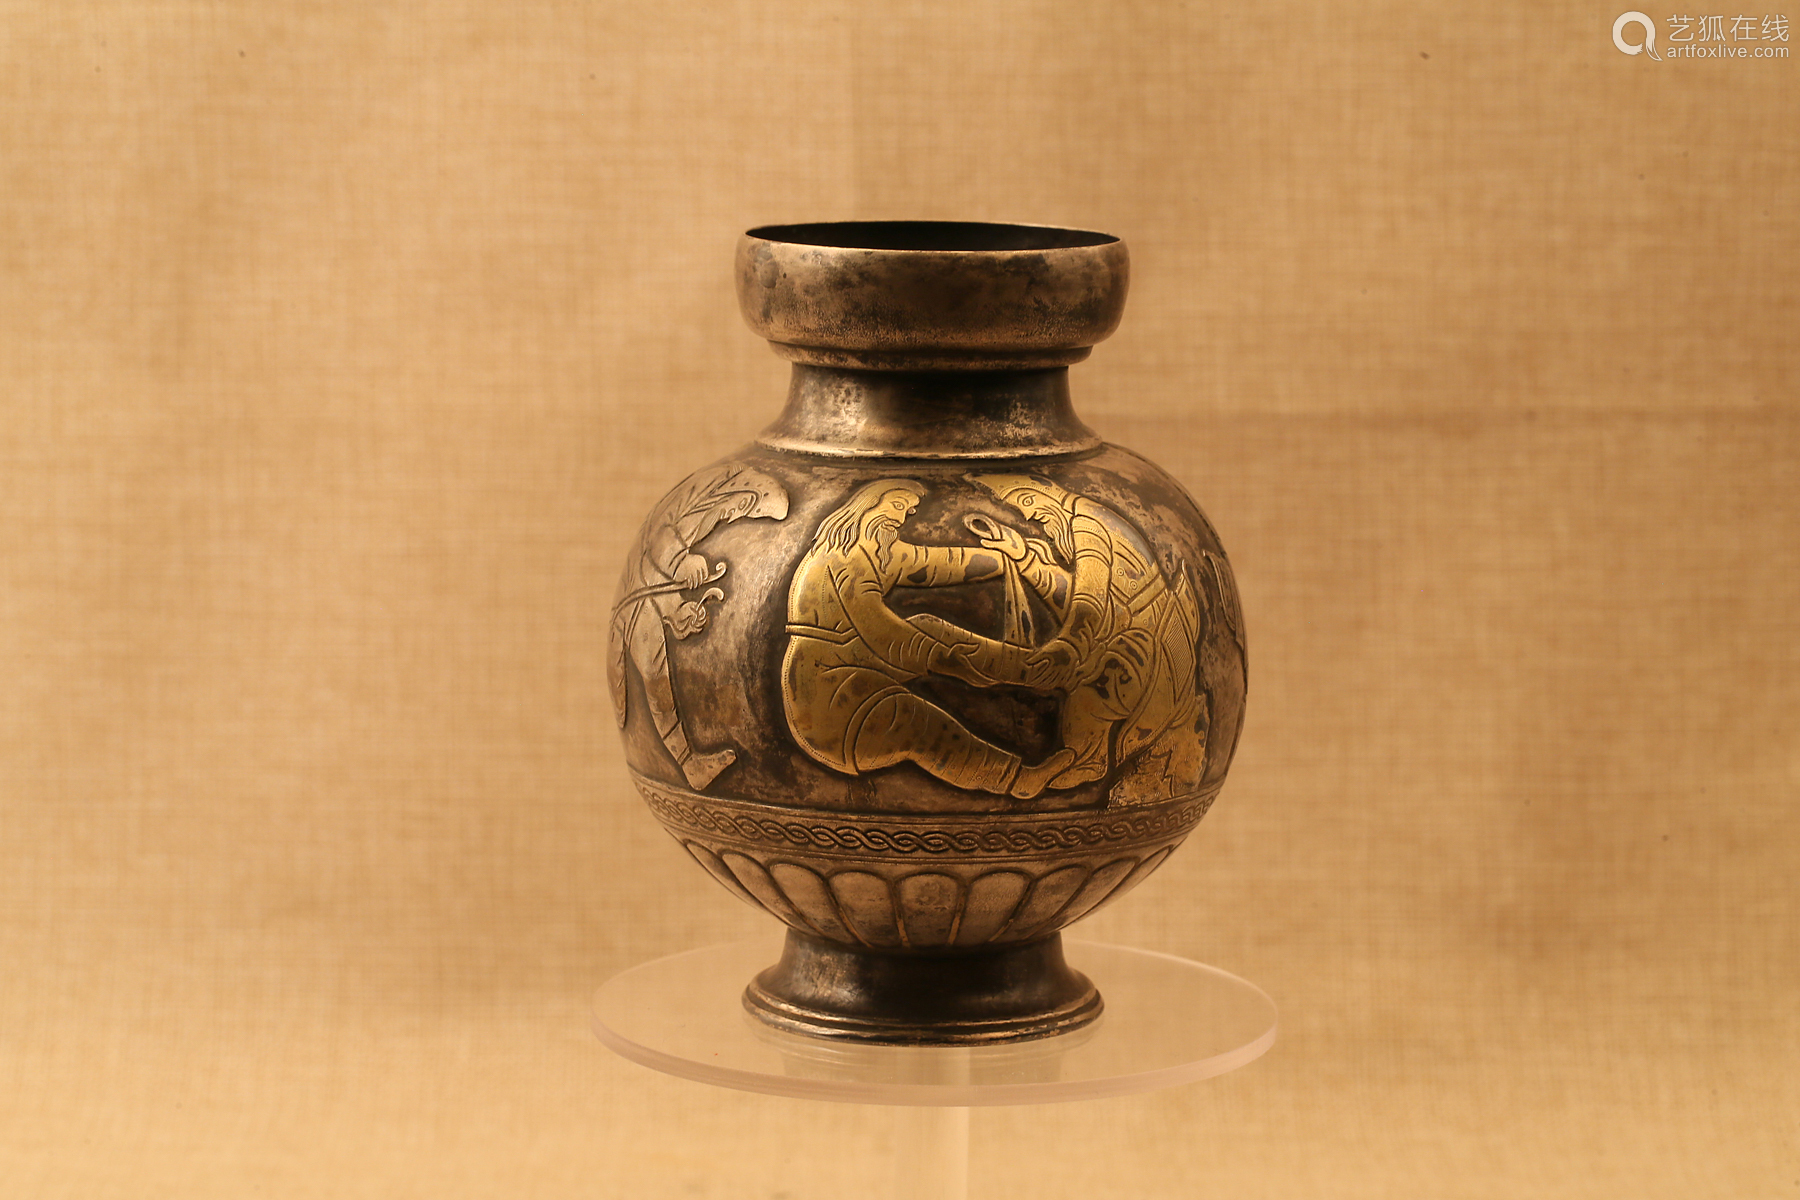 7-9TH CENTURY, A SOLDIER'S LIFE PATTERN GILT SILVER VASE,TANG DYNASTY